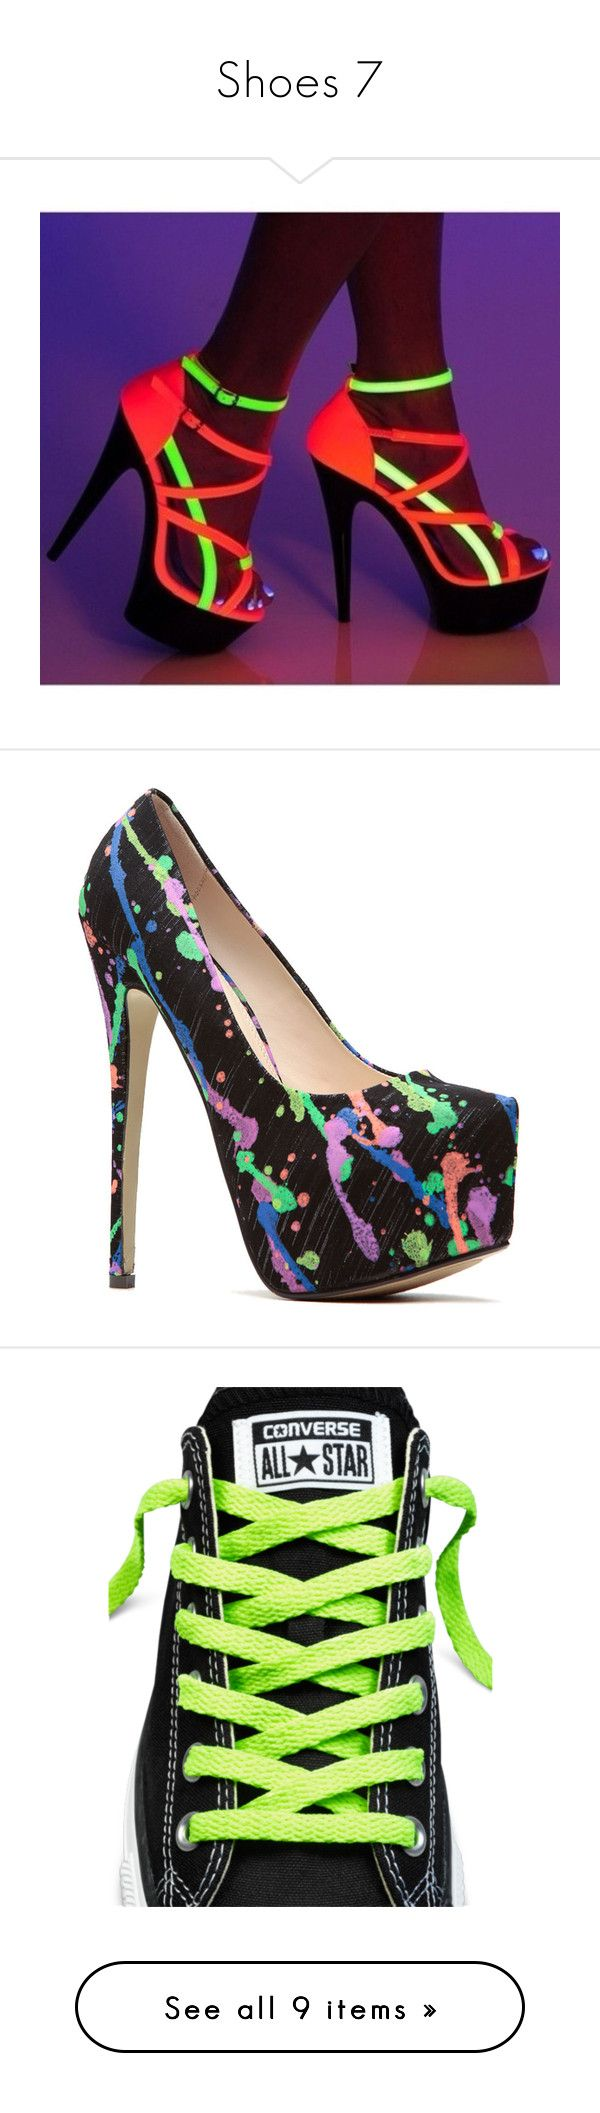 """""""Shoes 7"""" by katmccreery on Polyvore featuring shoes, neon, strappy high heel shoes, fluorescent shoes, glow in the dark shoes, strap high heel shoes, neon shoes, pumps, heels and neon pumps"""